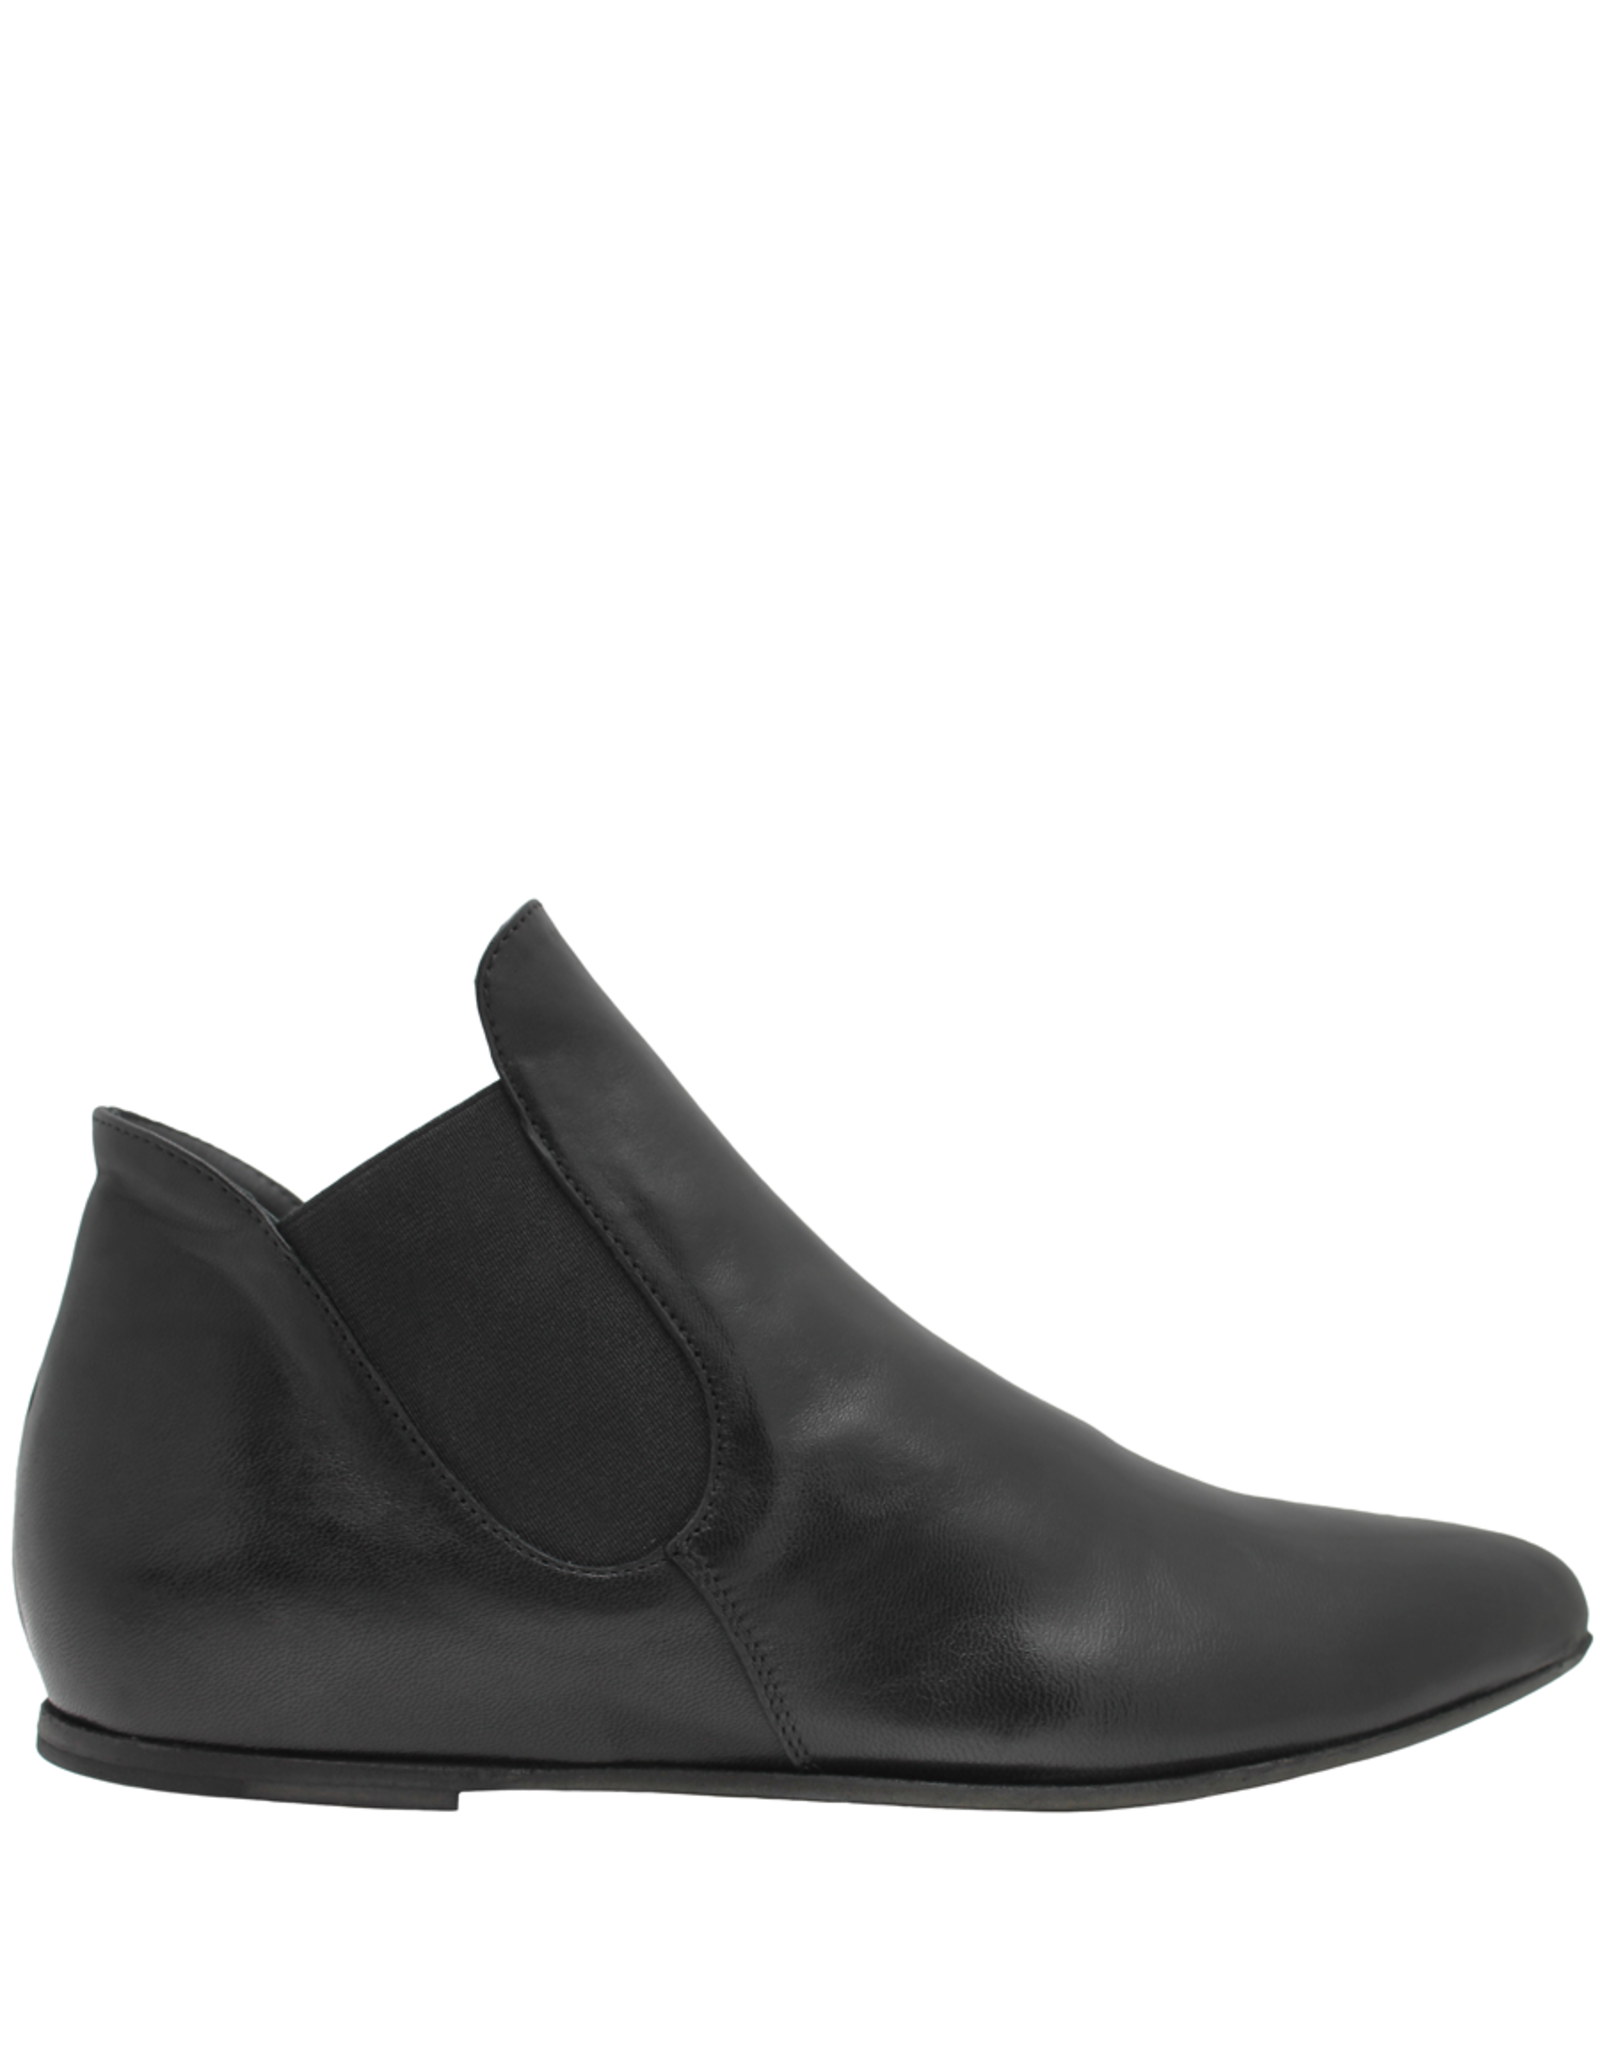 Ink Black Slip On Boot 4730